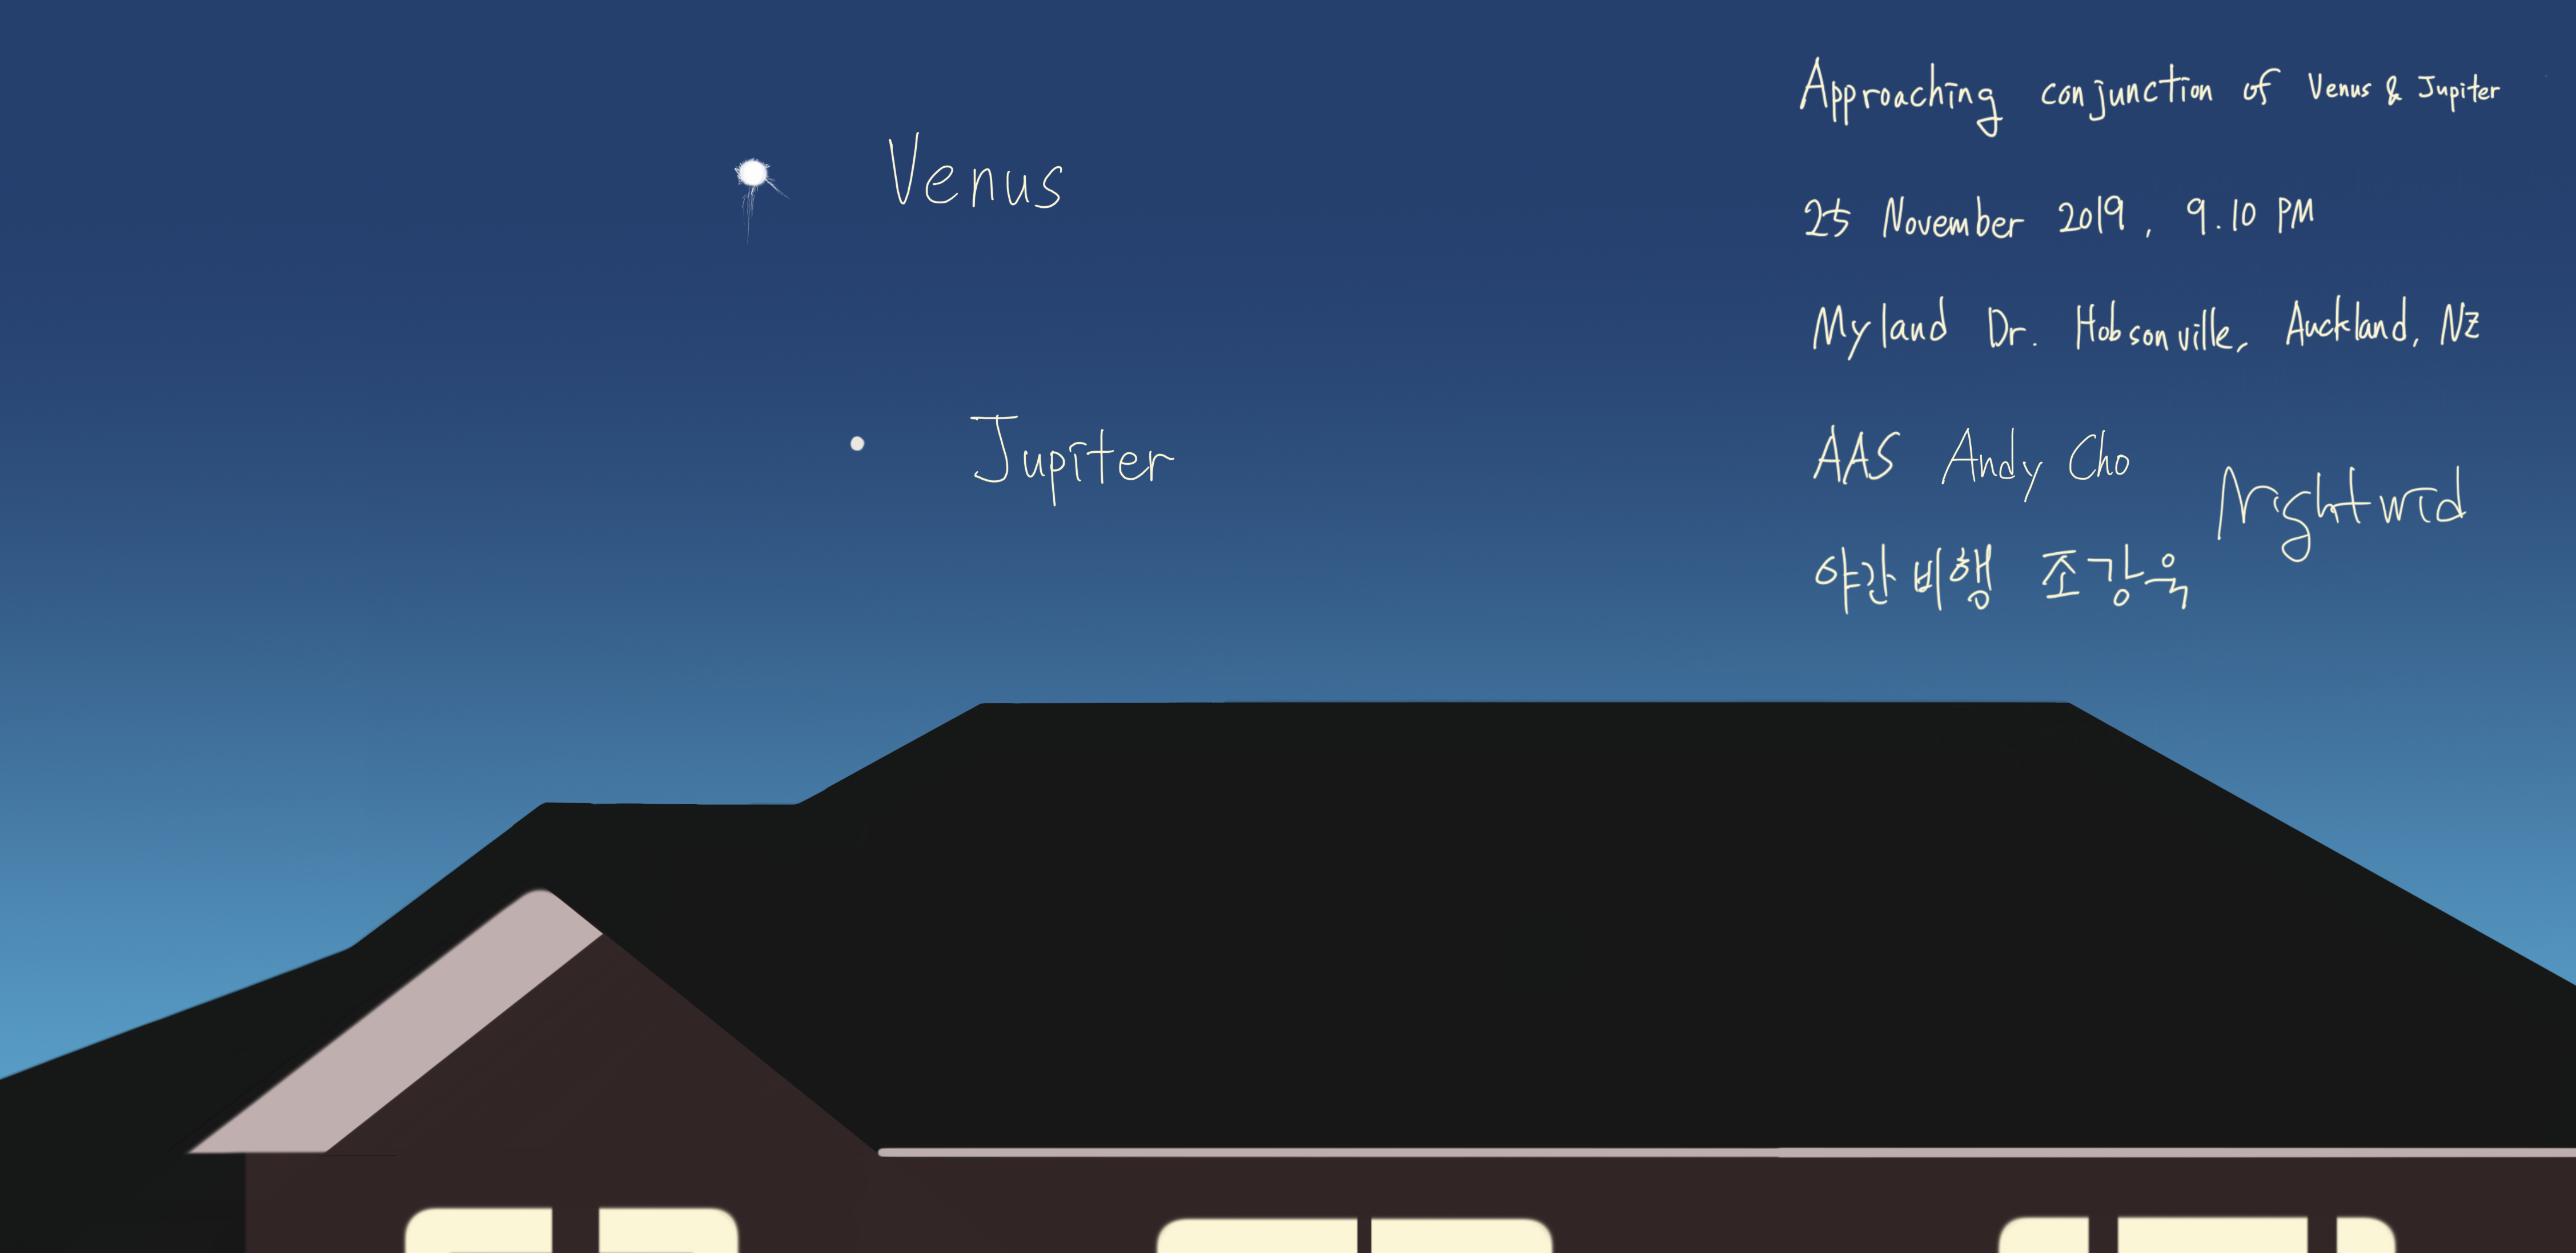 Approaching conjunction of Venus and Jupiter.png